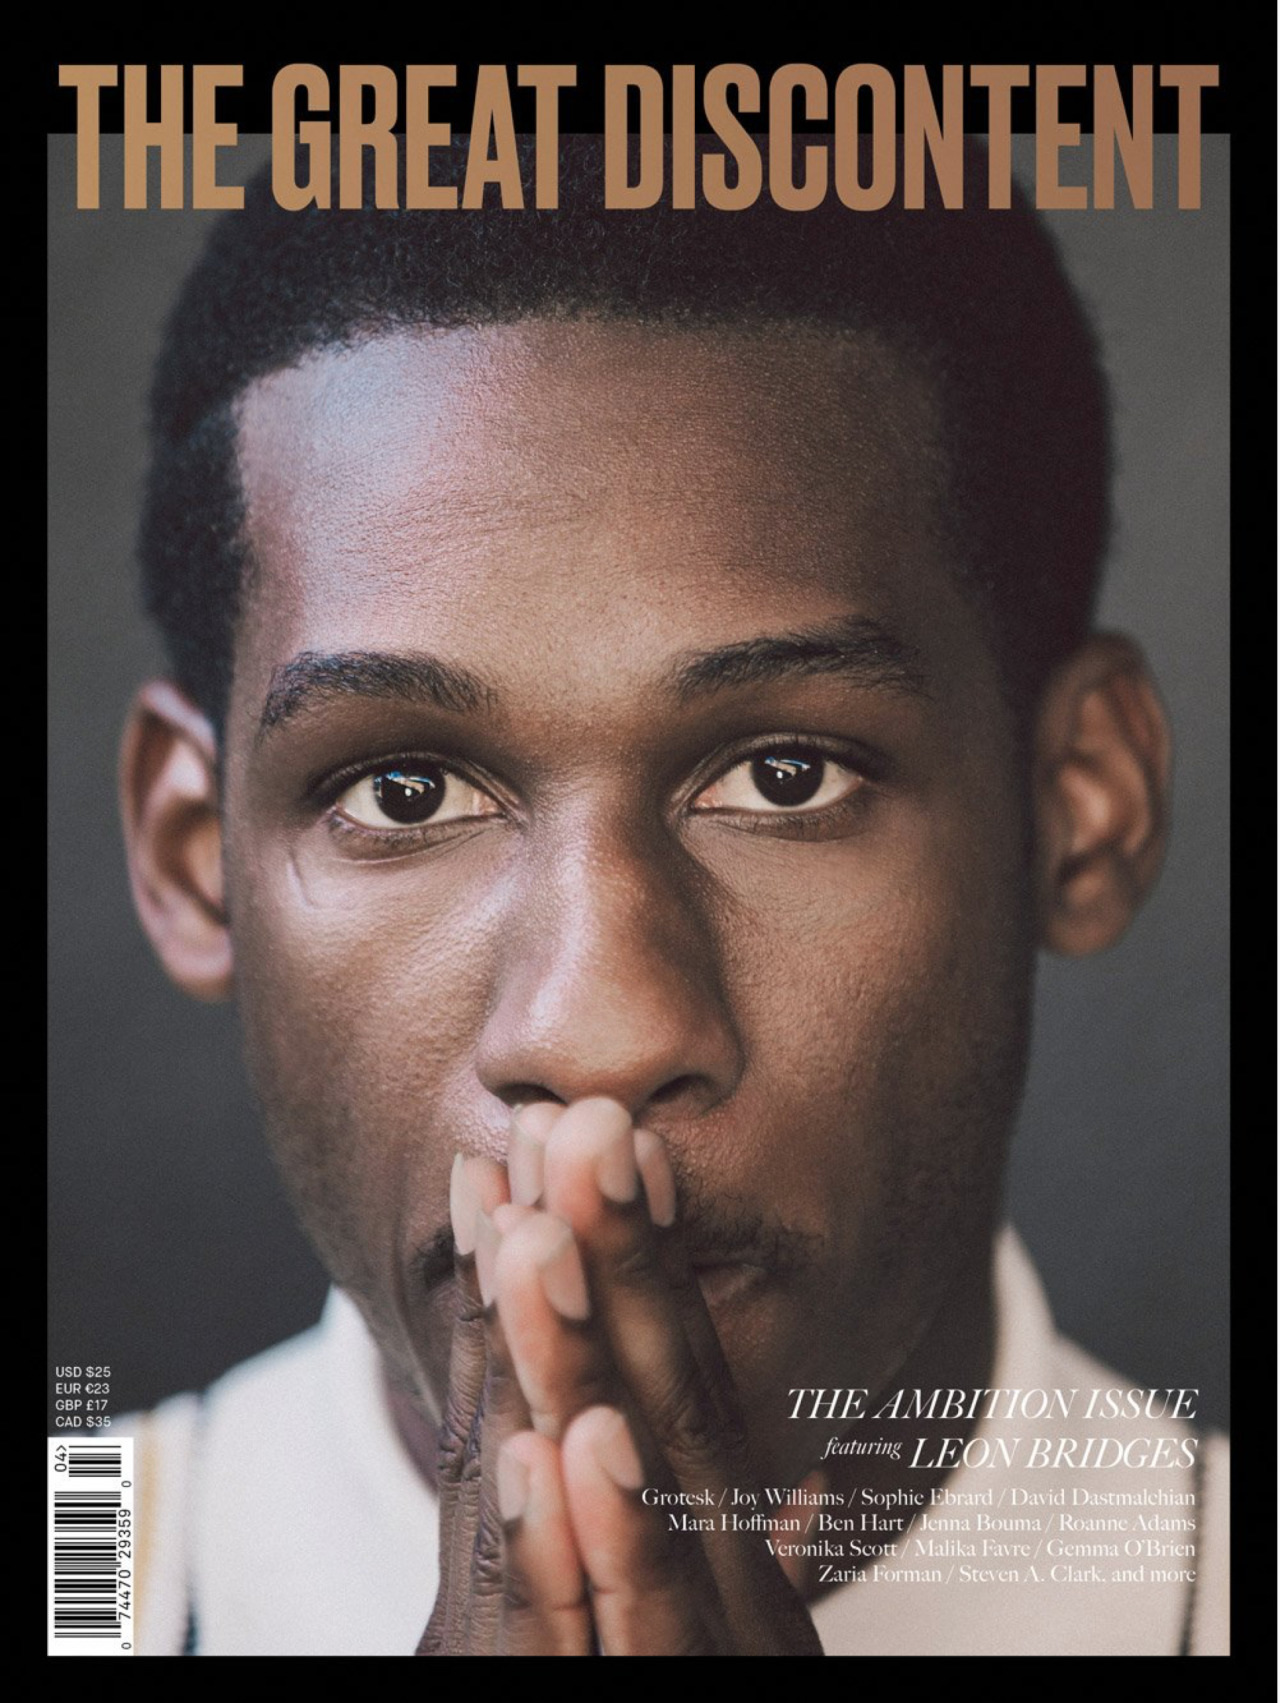 Leon Bridges | The Great Discontent